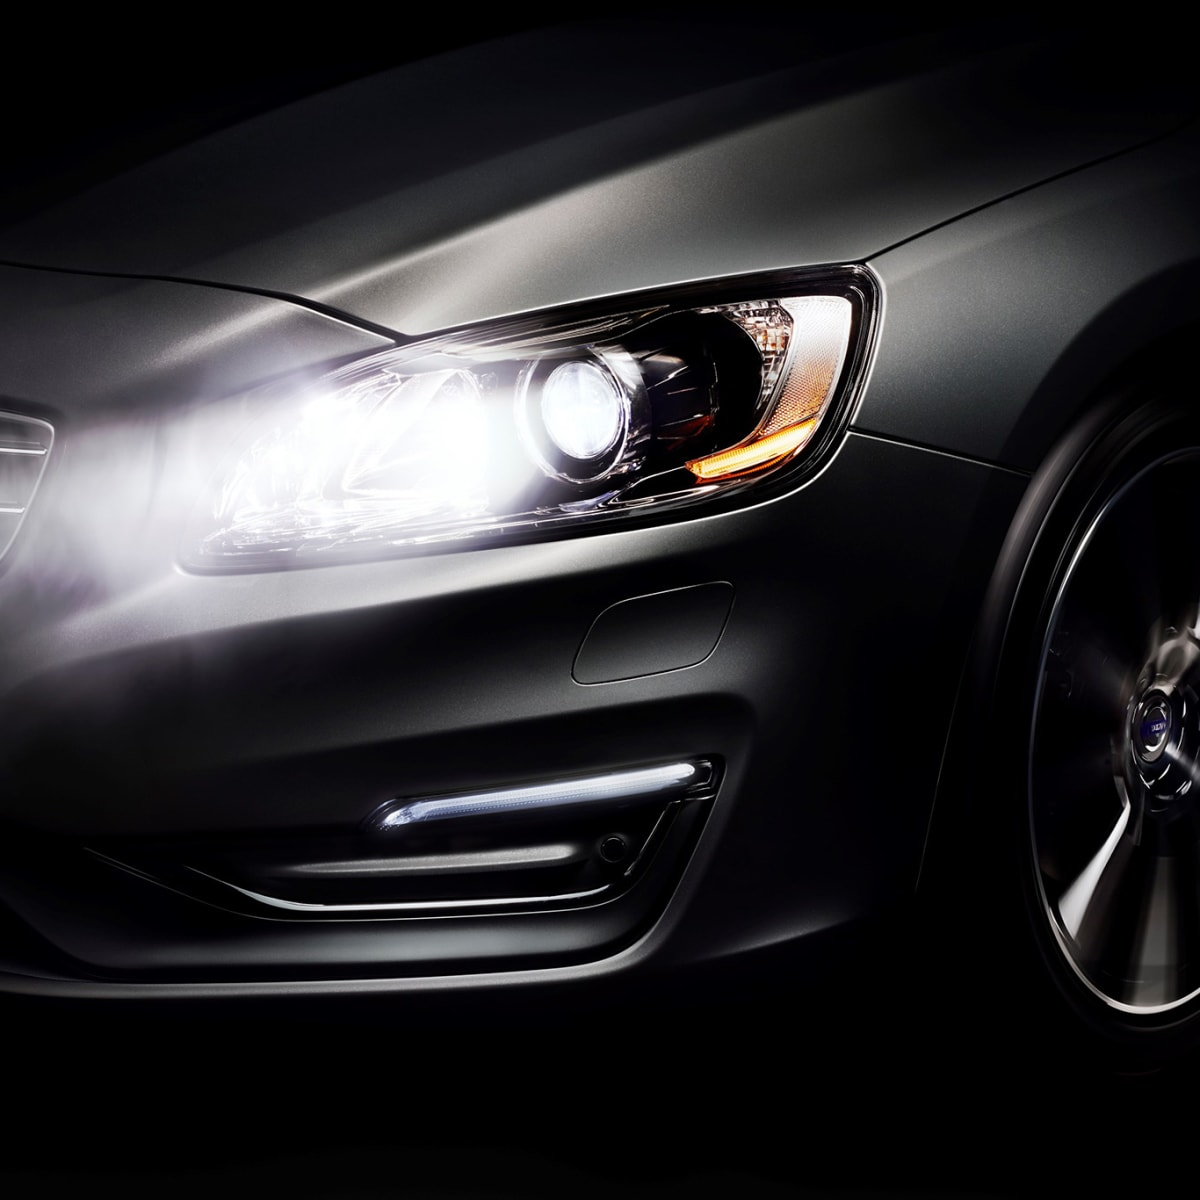 Headlight assistance technology explained: Adaptive headlights